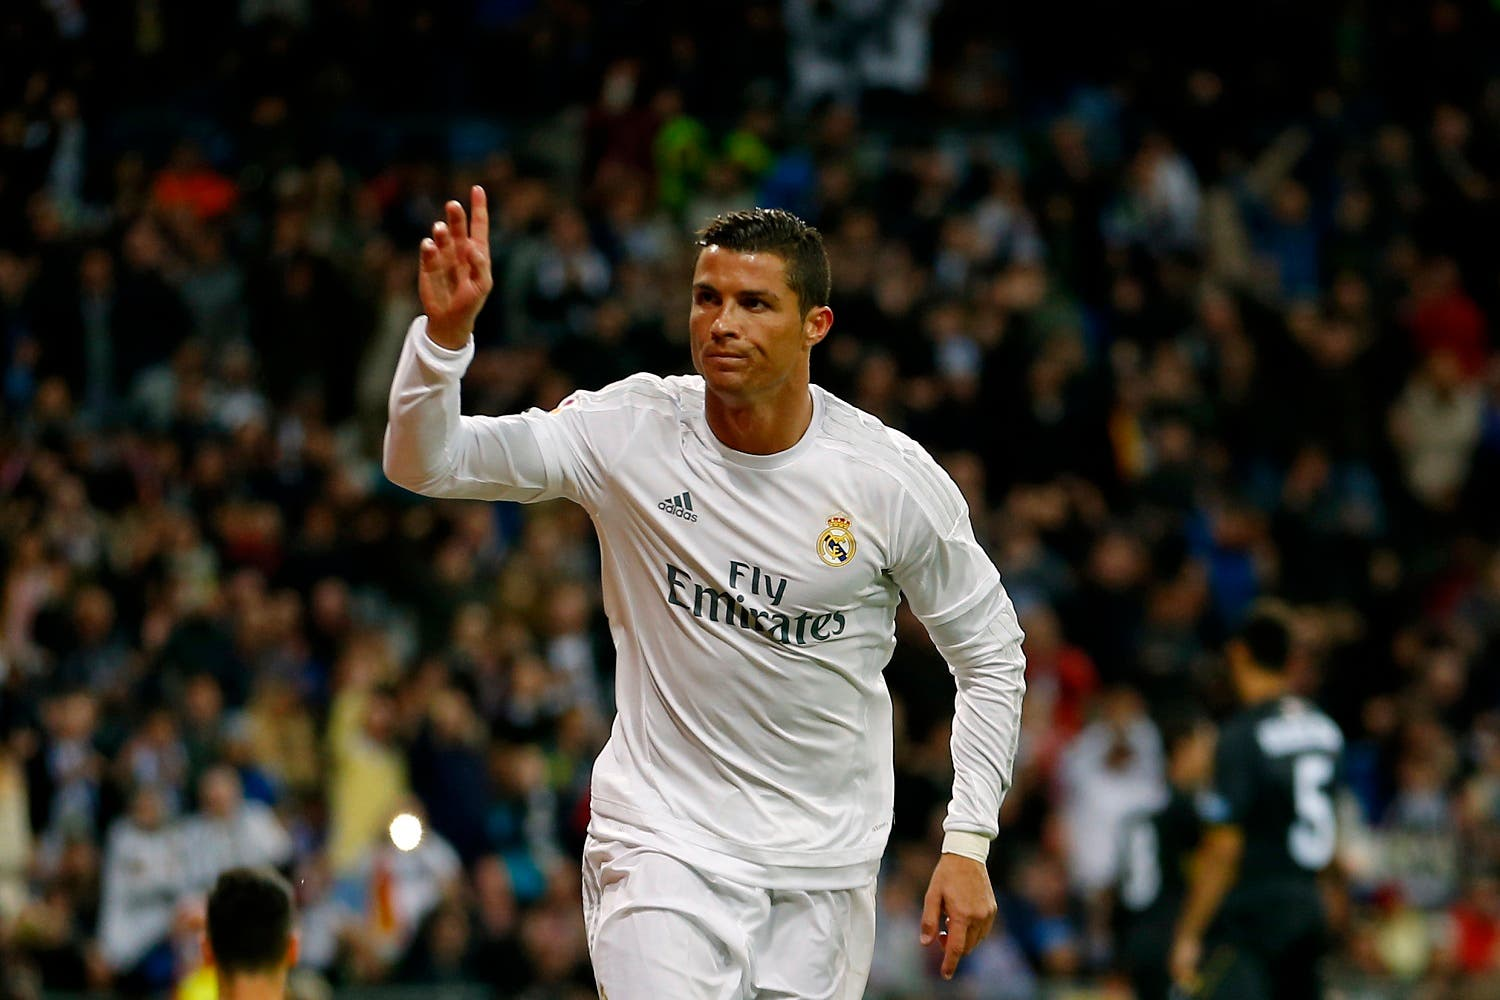 Real Madrid's Cristiano Ronaldo celebrates after scoring against Sevilla during a Spanish La Liga soccer match between Real Madrid and Sevilla at the Santiago Bernabeu stadium, in Madrid, Sunday, March 20, 2016. Ronaldo scored once in Real Madrid's 4-0 victory. (AP)